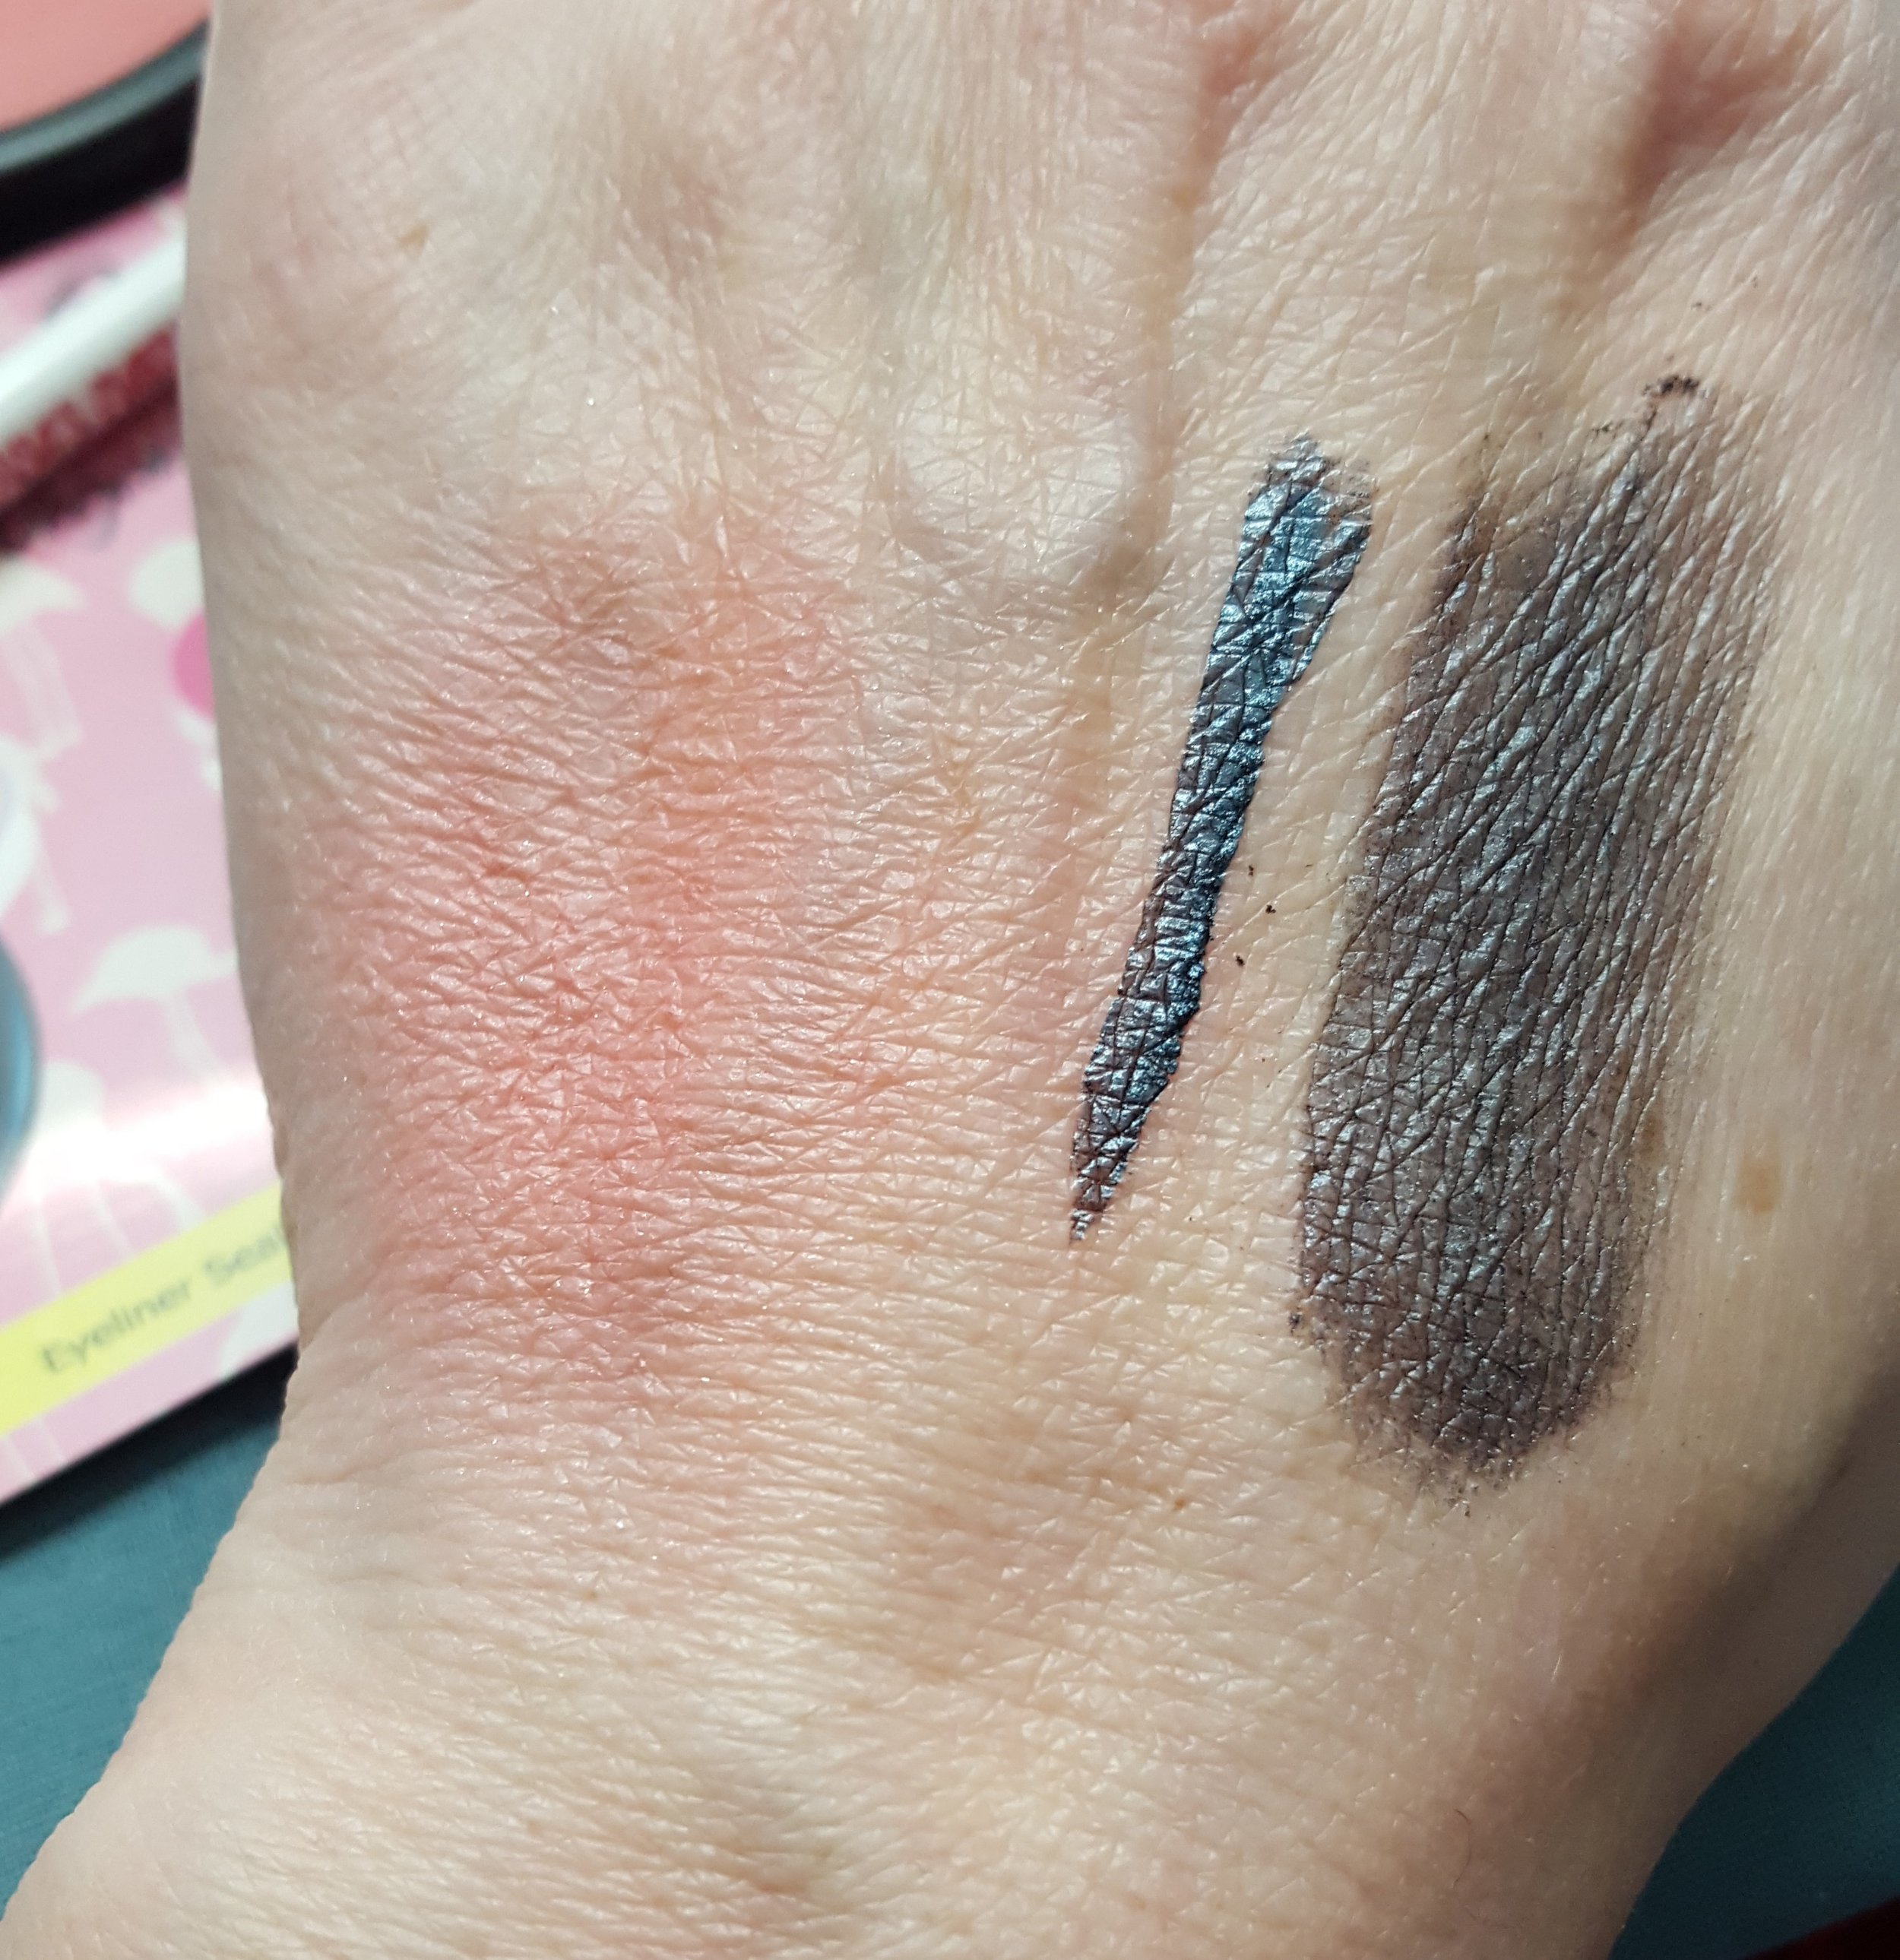 L to R: Blush swatch; Helter Skelter with eyeliner seal; Helter Skelter dry swatch